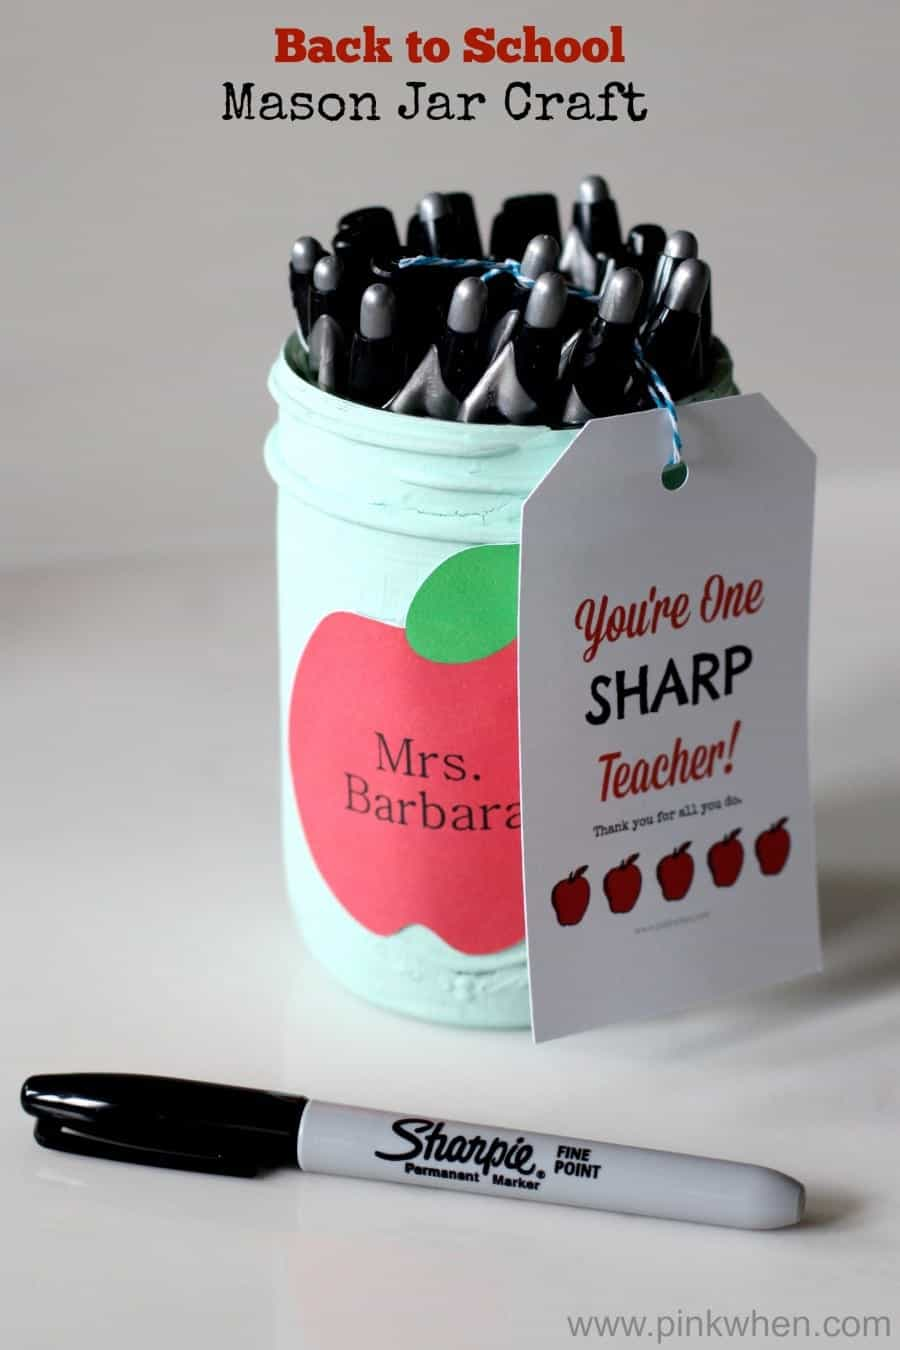 Back-to-School-Mason-Jar-Craft-Teacher-Gift-Idea-inspirestudents-teacherschangelives-pmedia-ad-6